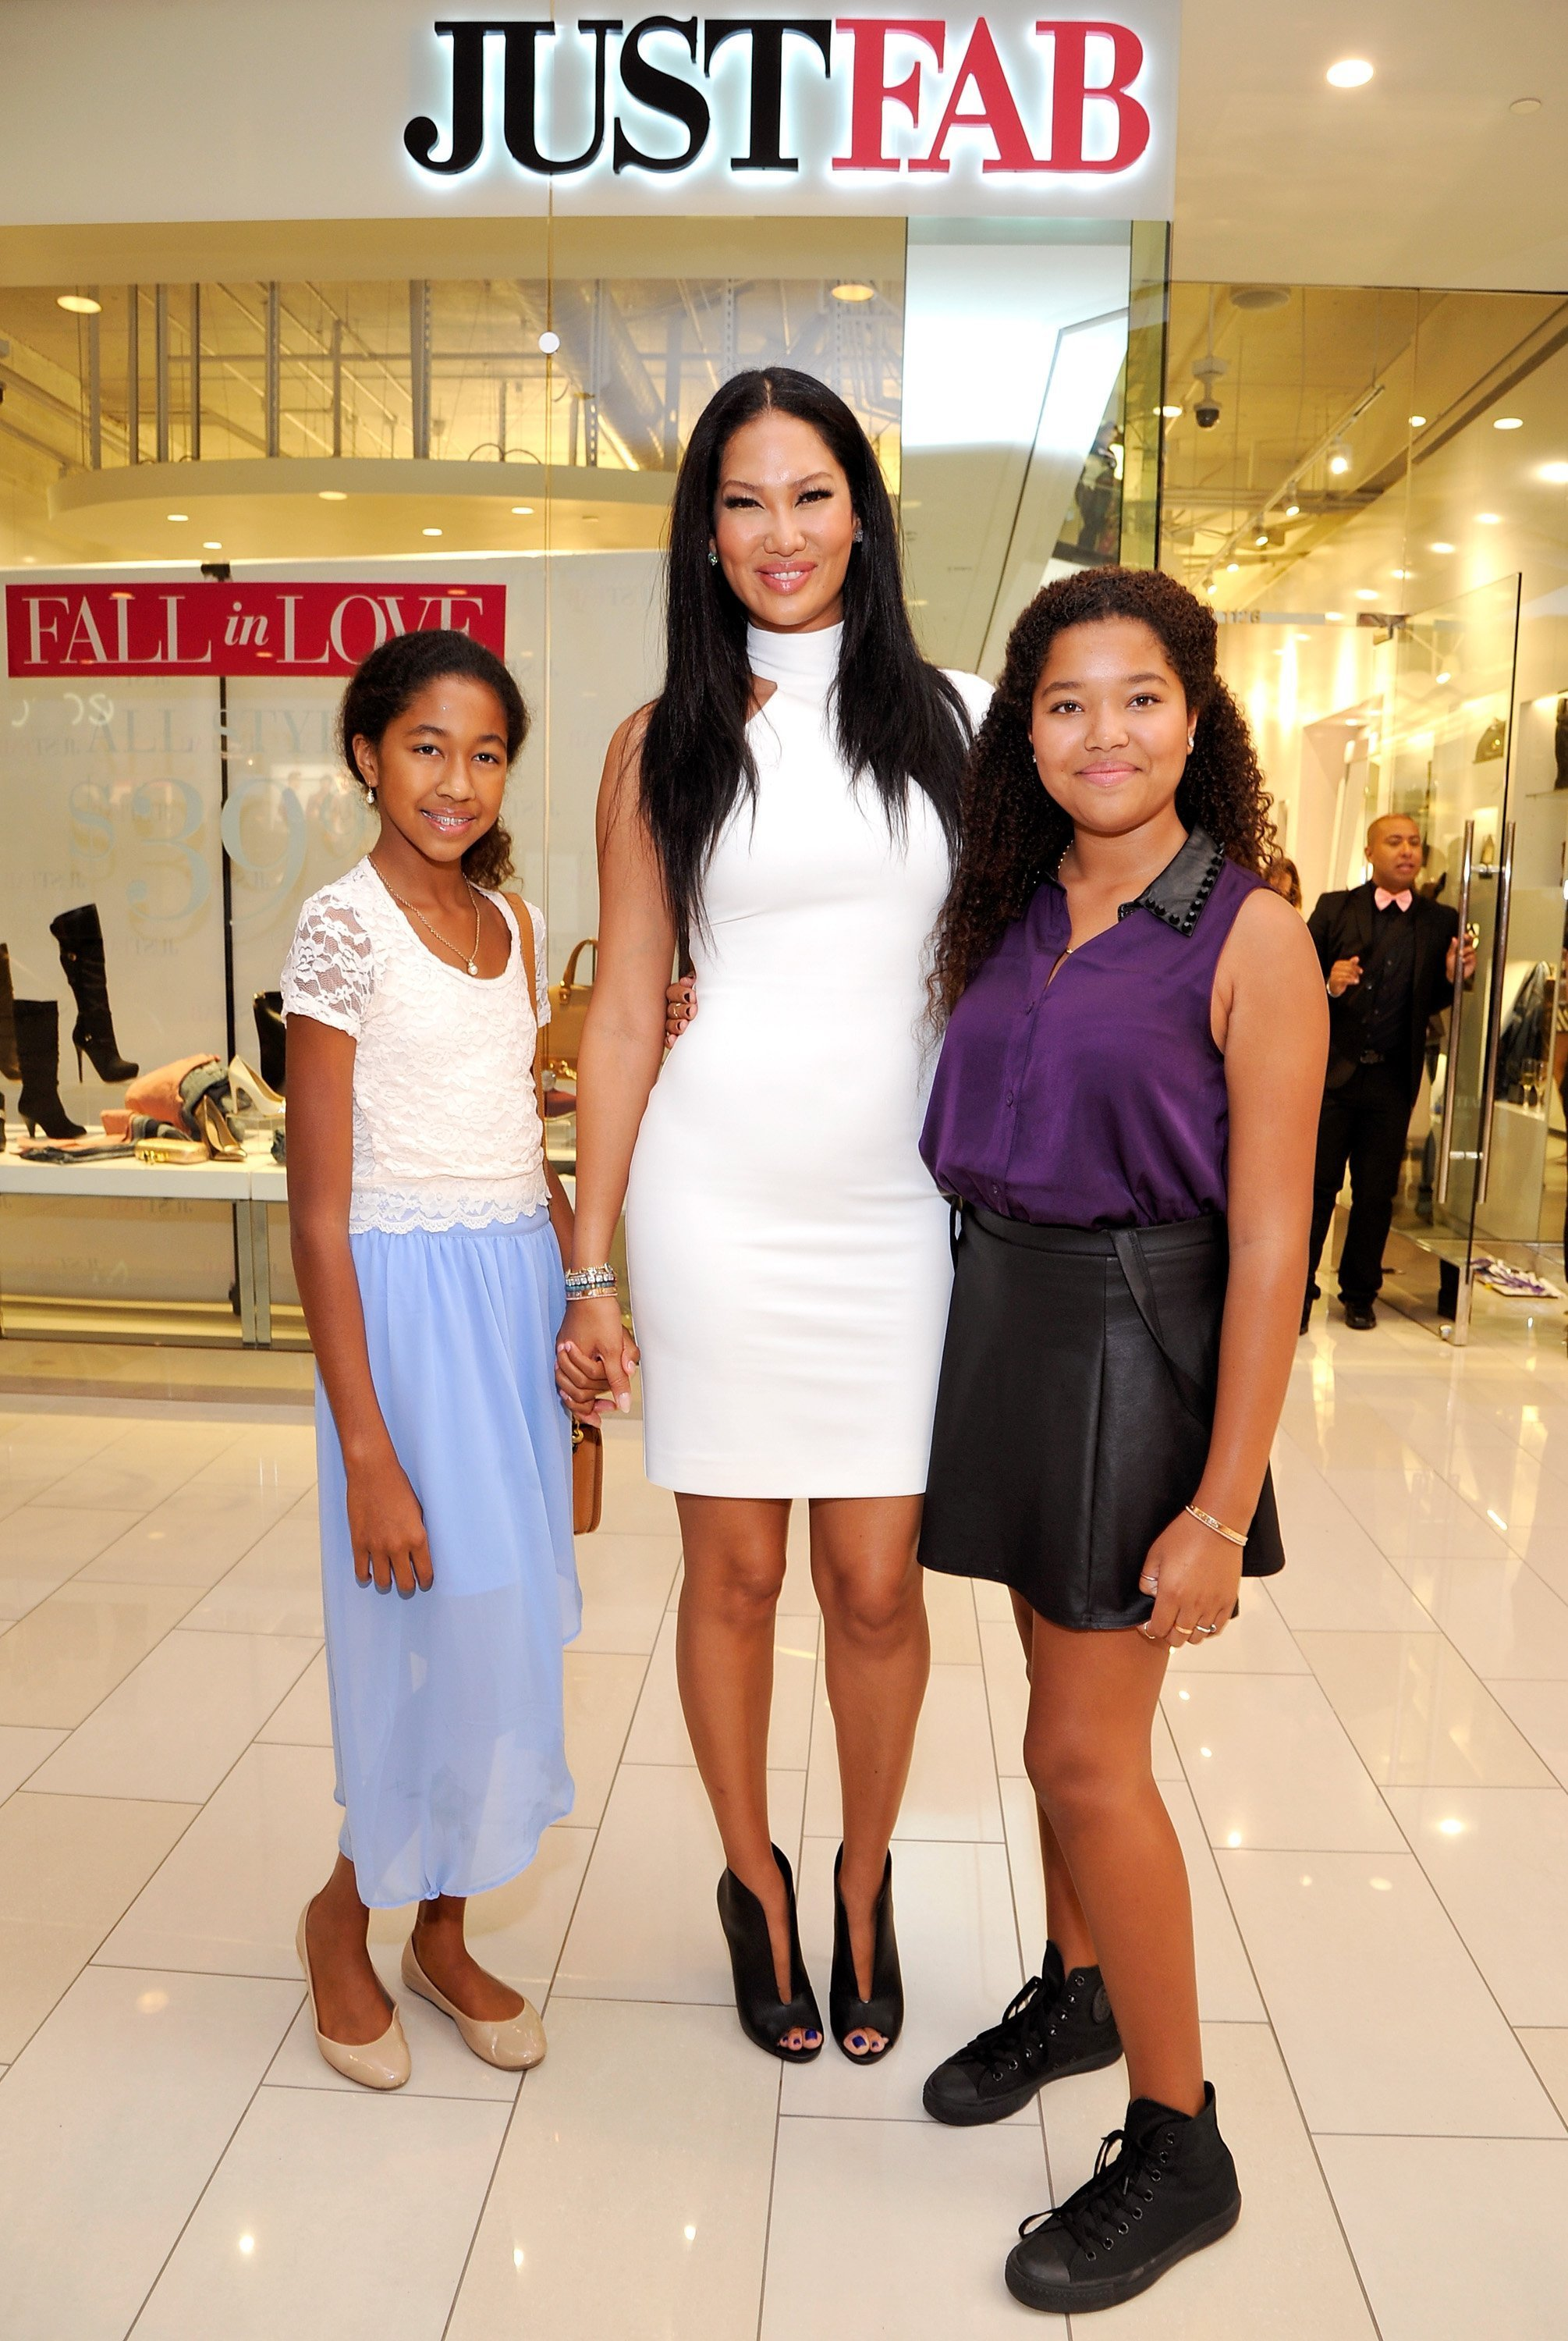 Aoki Lee Simmons, Kimora Lee Simmons and Ming Lee Simmons at JustFab.com Los Angeles flagship store debut on Sept. 14, 2013 | Photo: Getty images